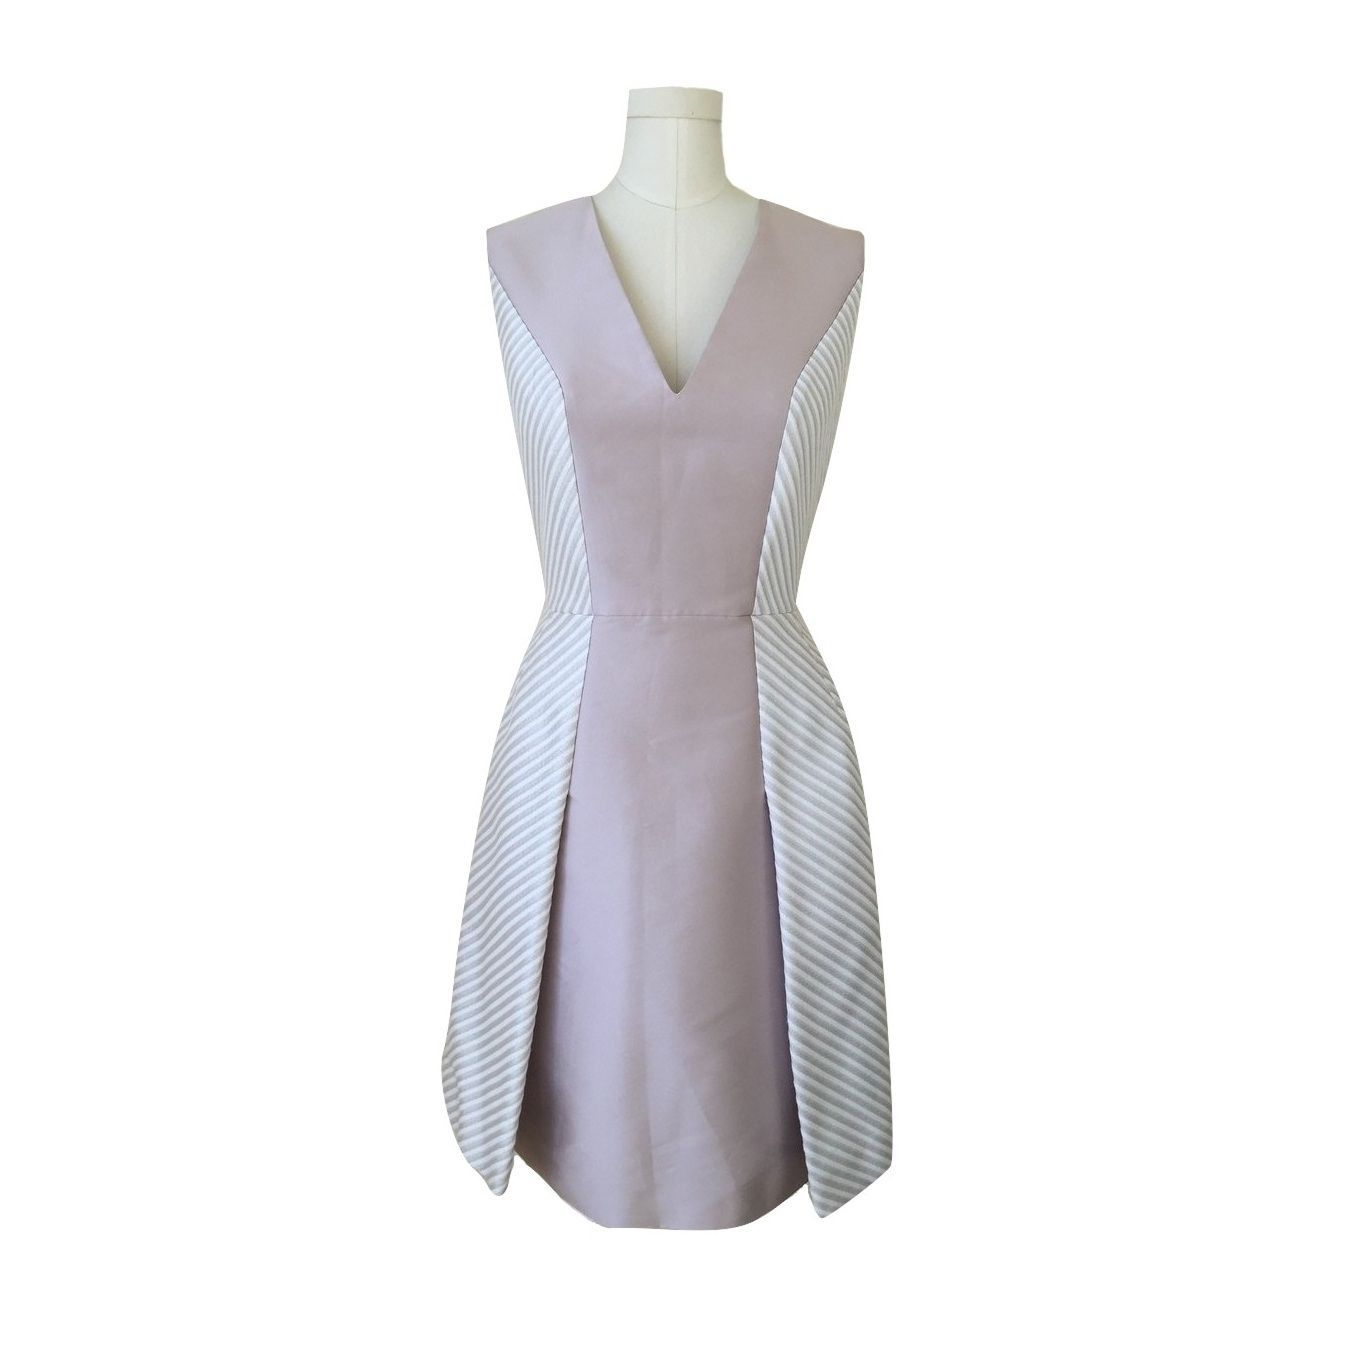 NWT! $795 PHILOSOPHY Sleeveless Fit & Flare Dress Mauve Pink White Silver 44/10 - $295.00